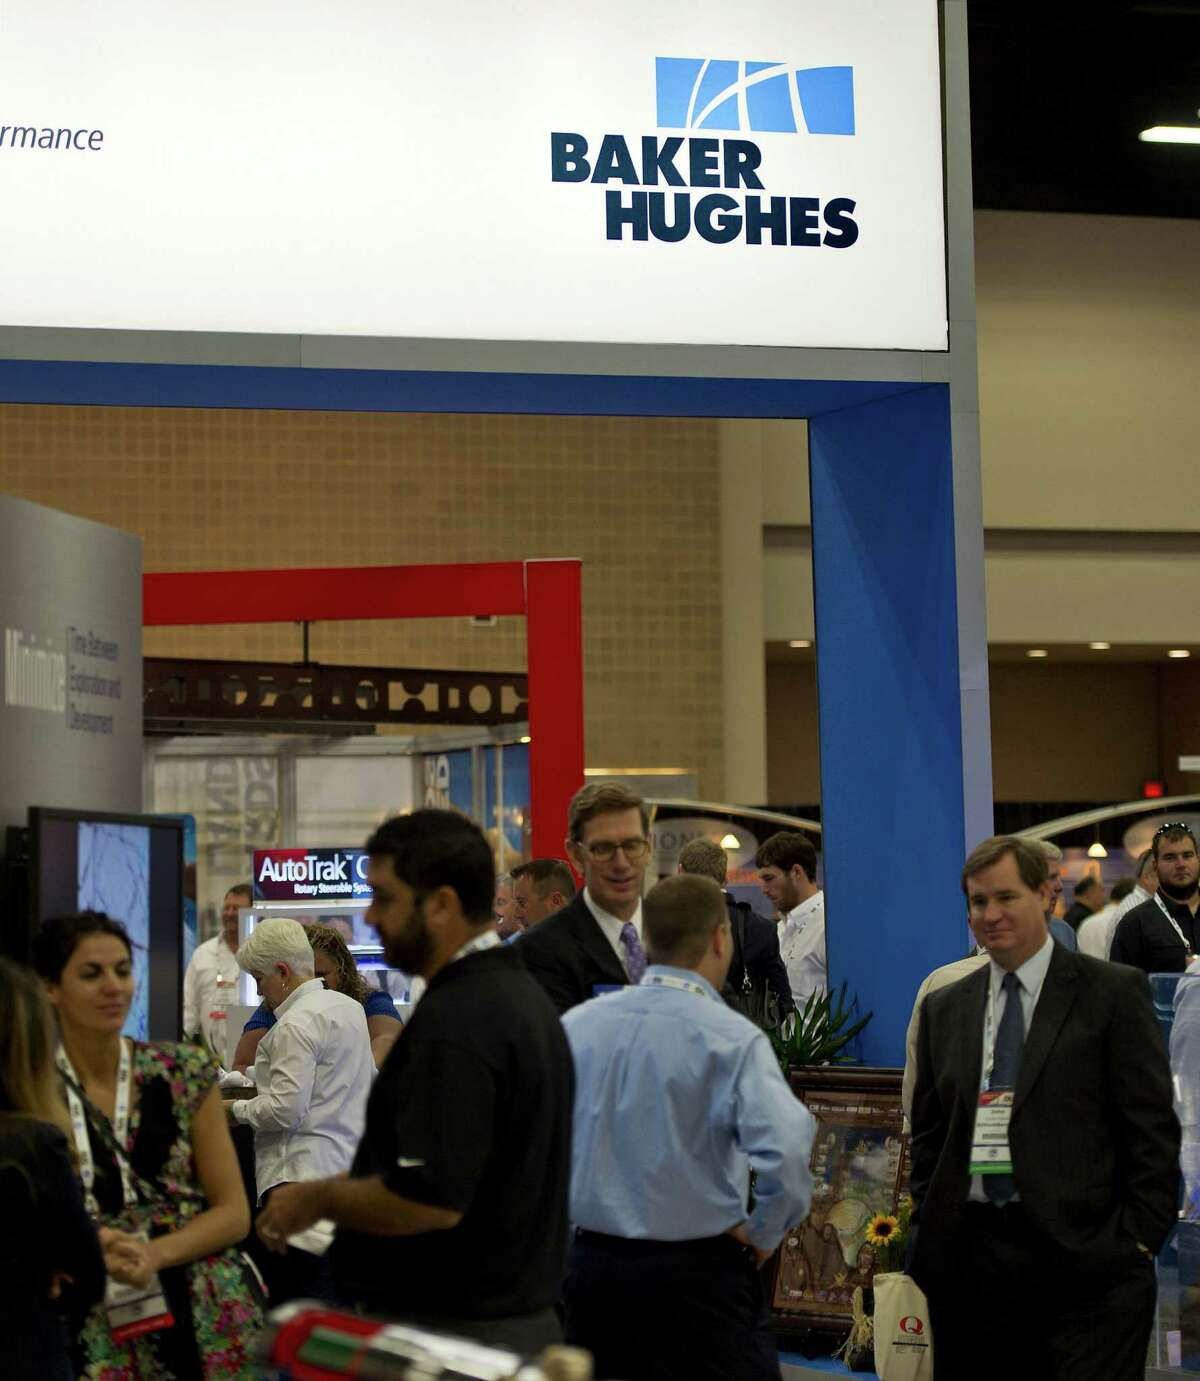 Baker Hughes will post the chemicals it uses in fracking on FracFocus.org.